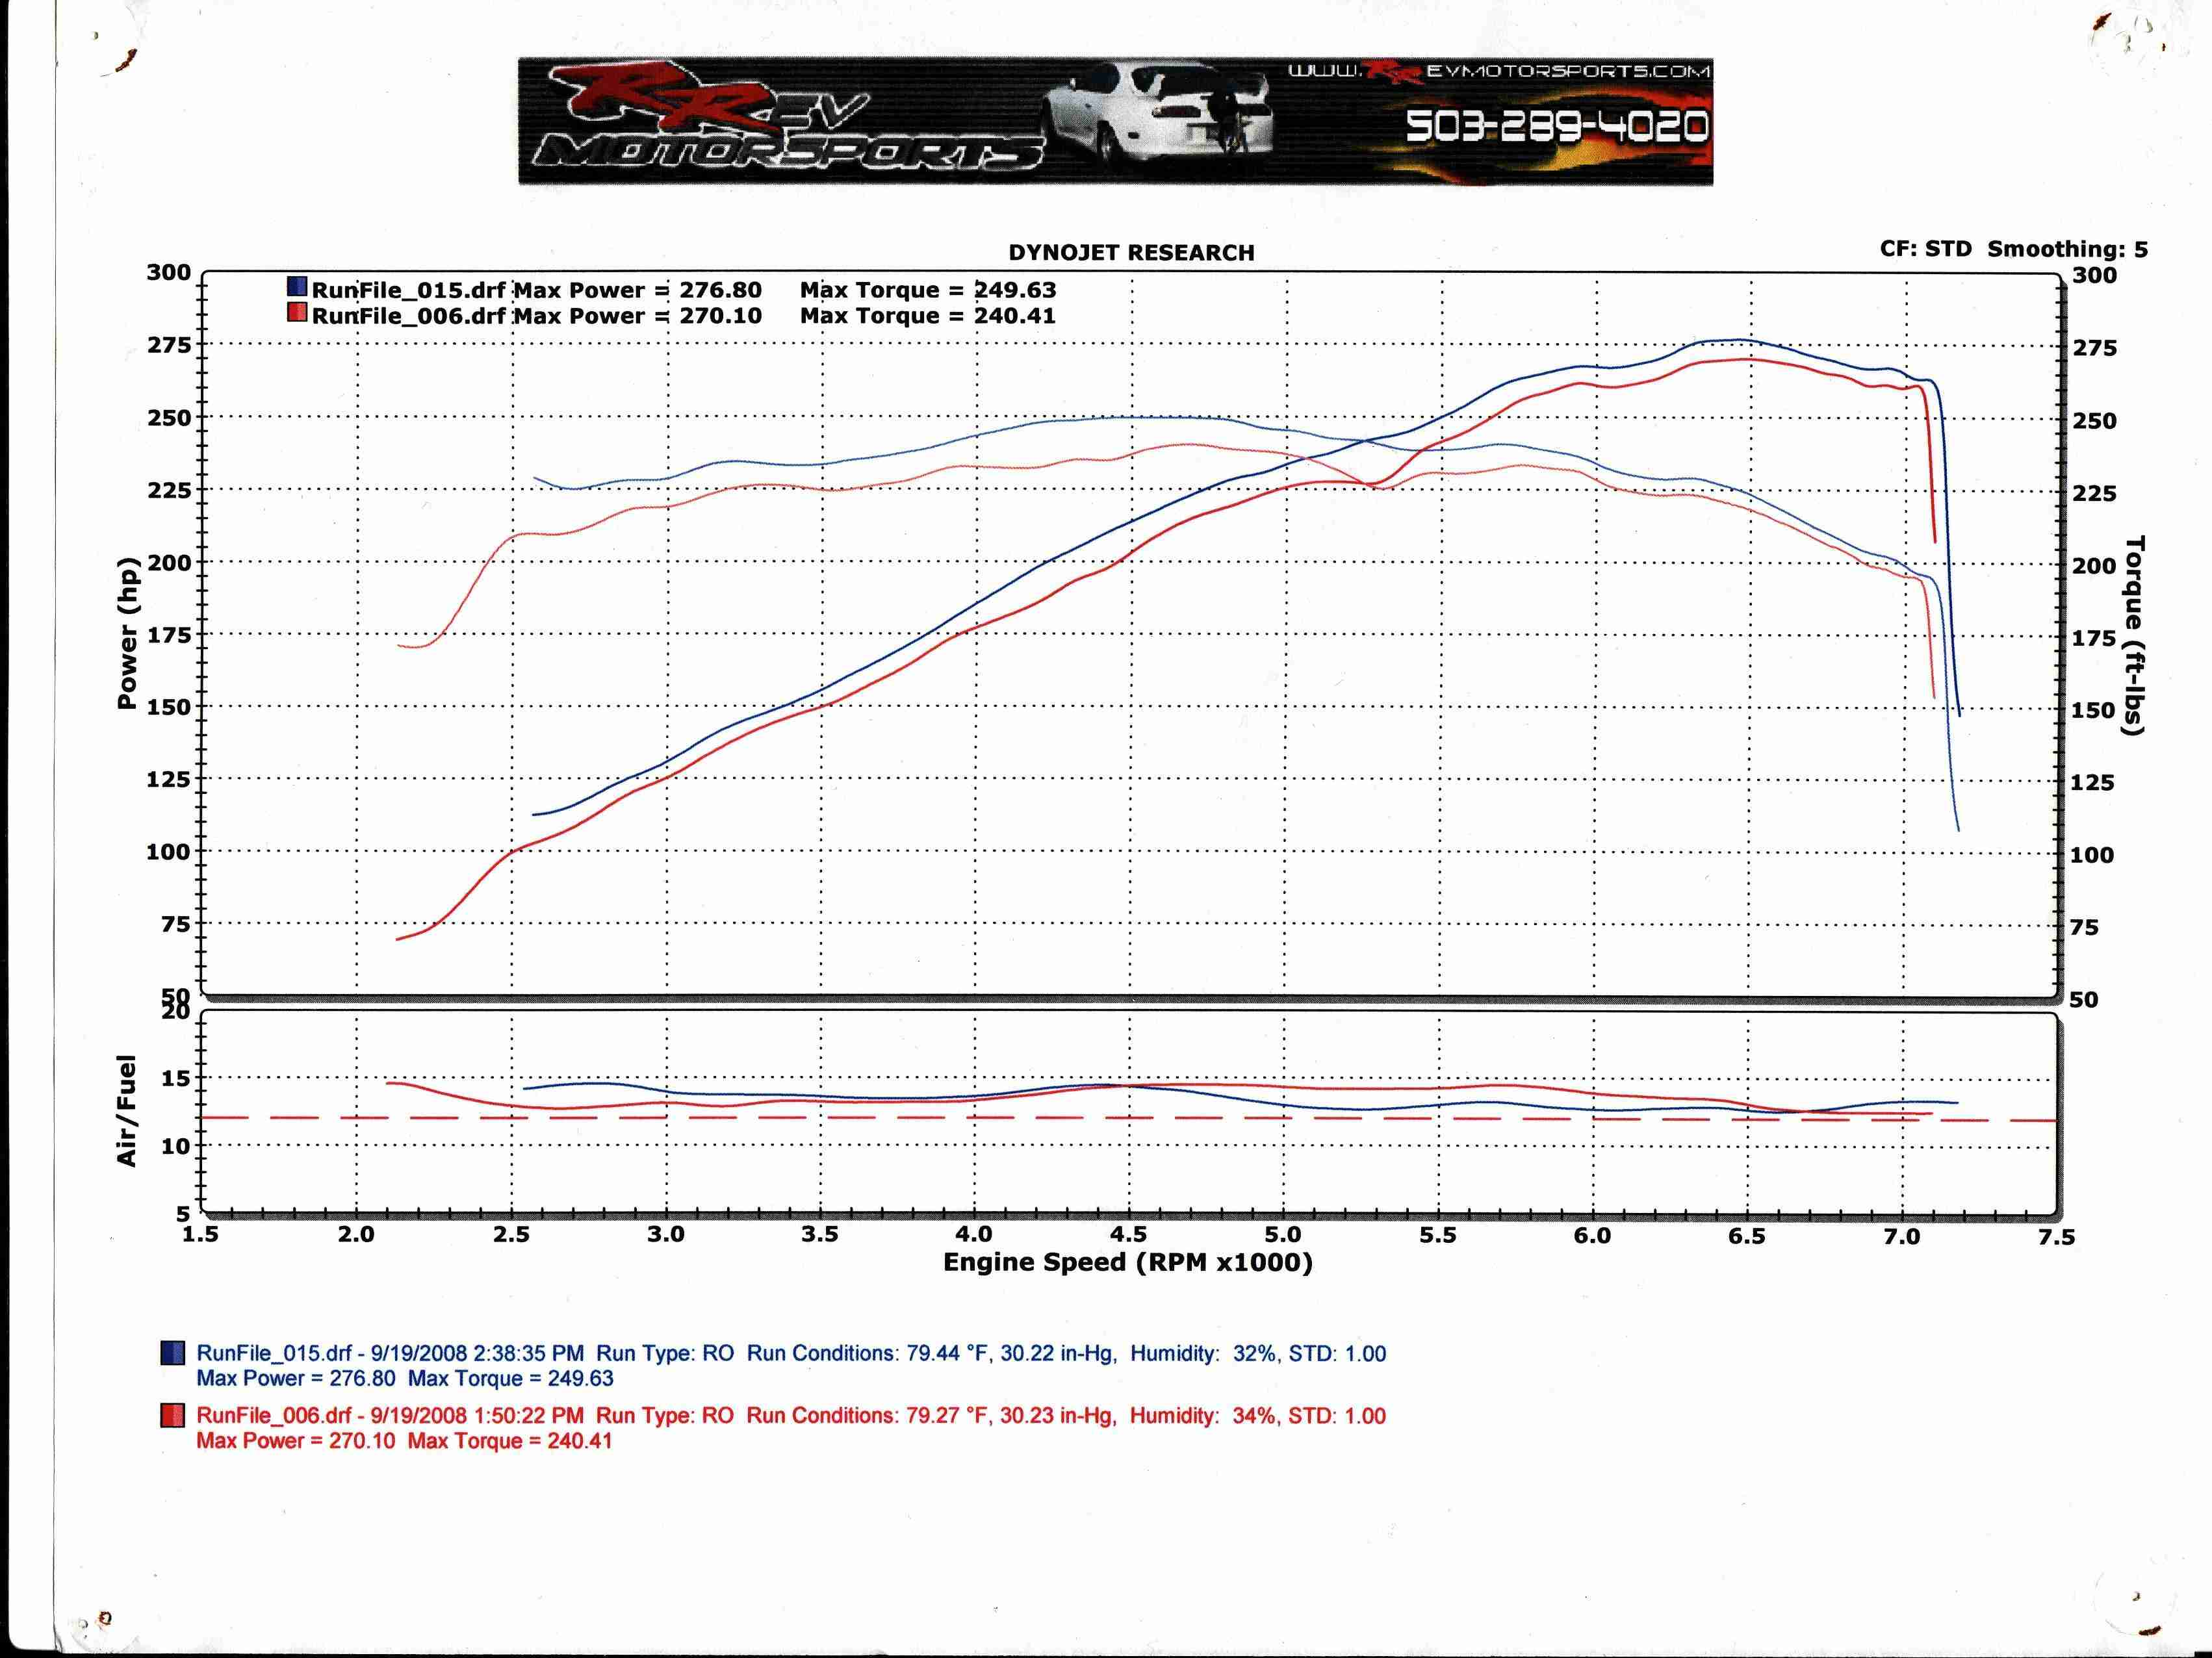 2004 Infiniti G35 Coupe MT Dyno Results Graph